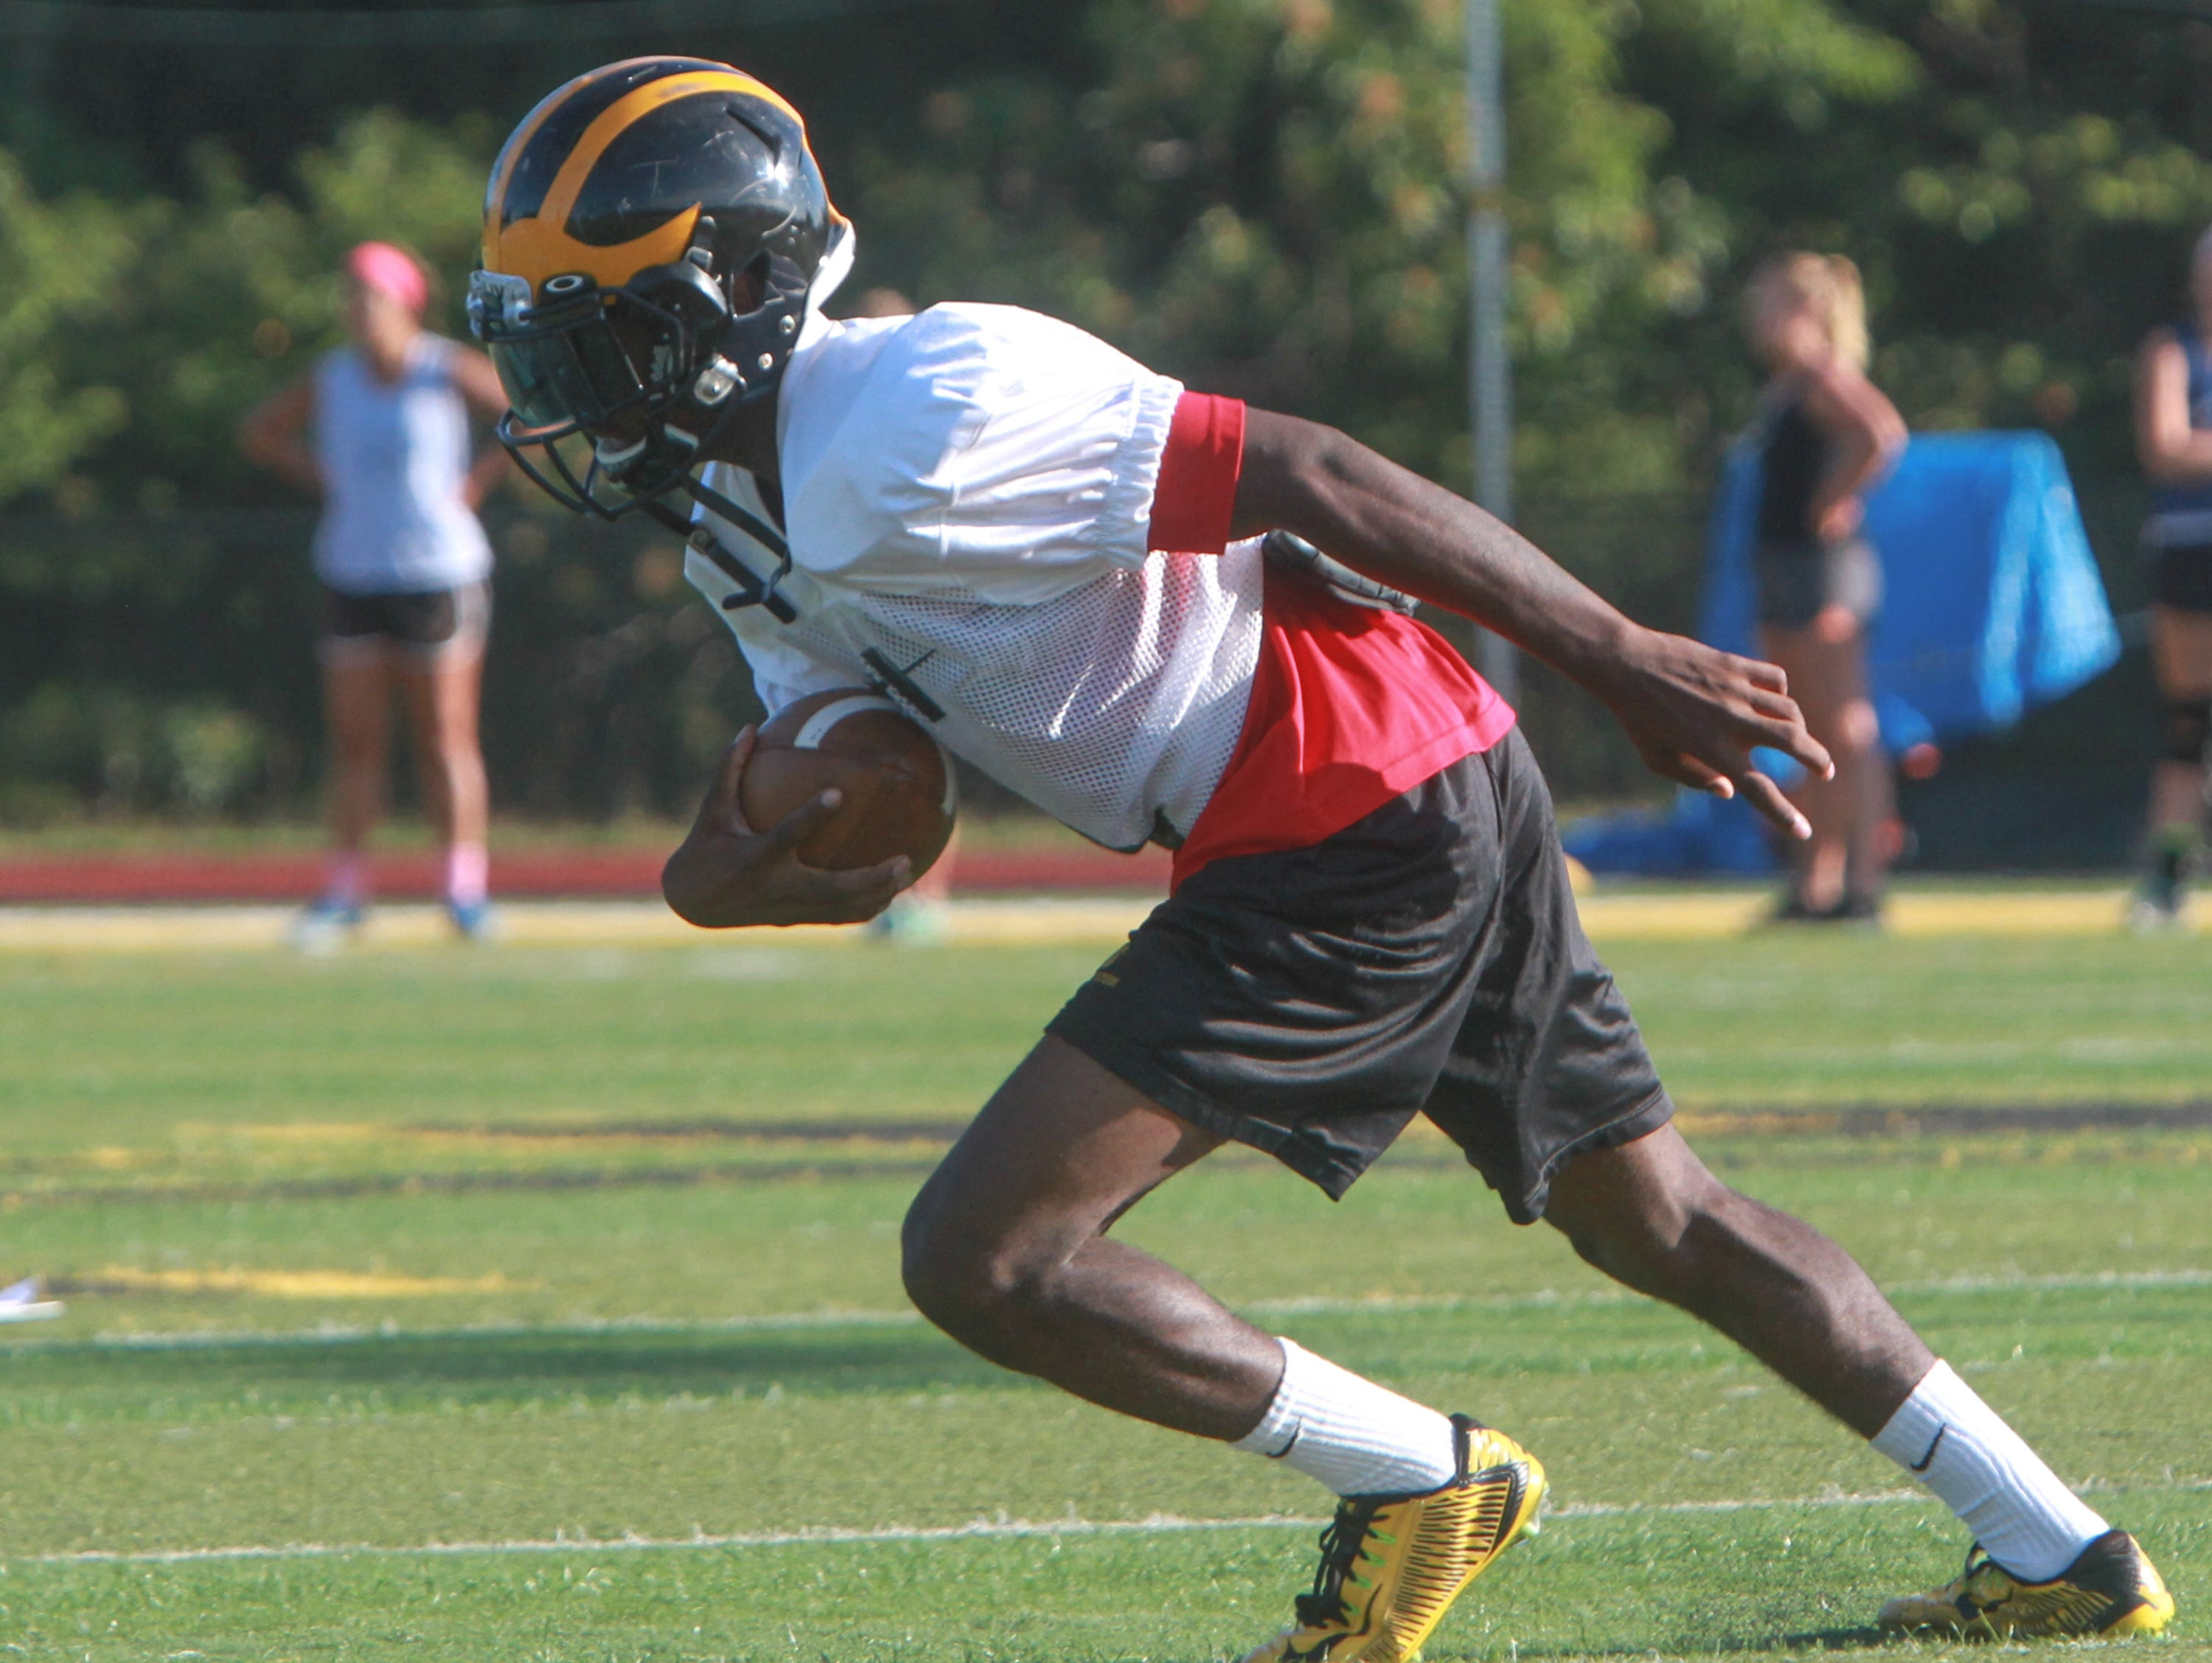 Khalil Haskins will be a key player for St,. John Vianney in the NJSIAA Non-Public Group III championship game.